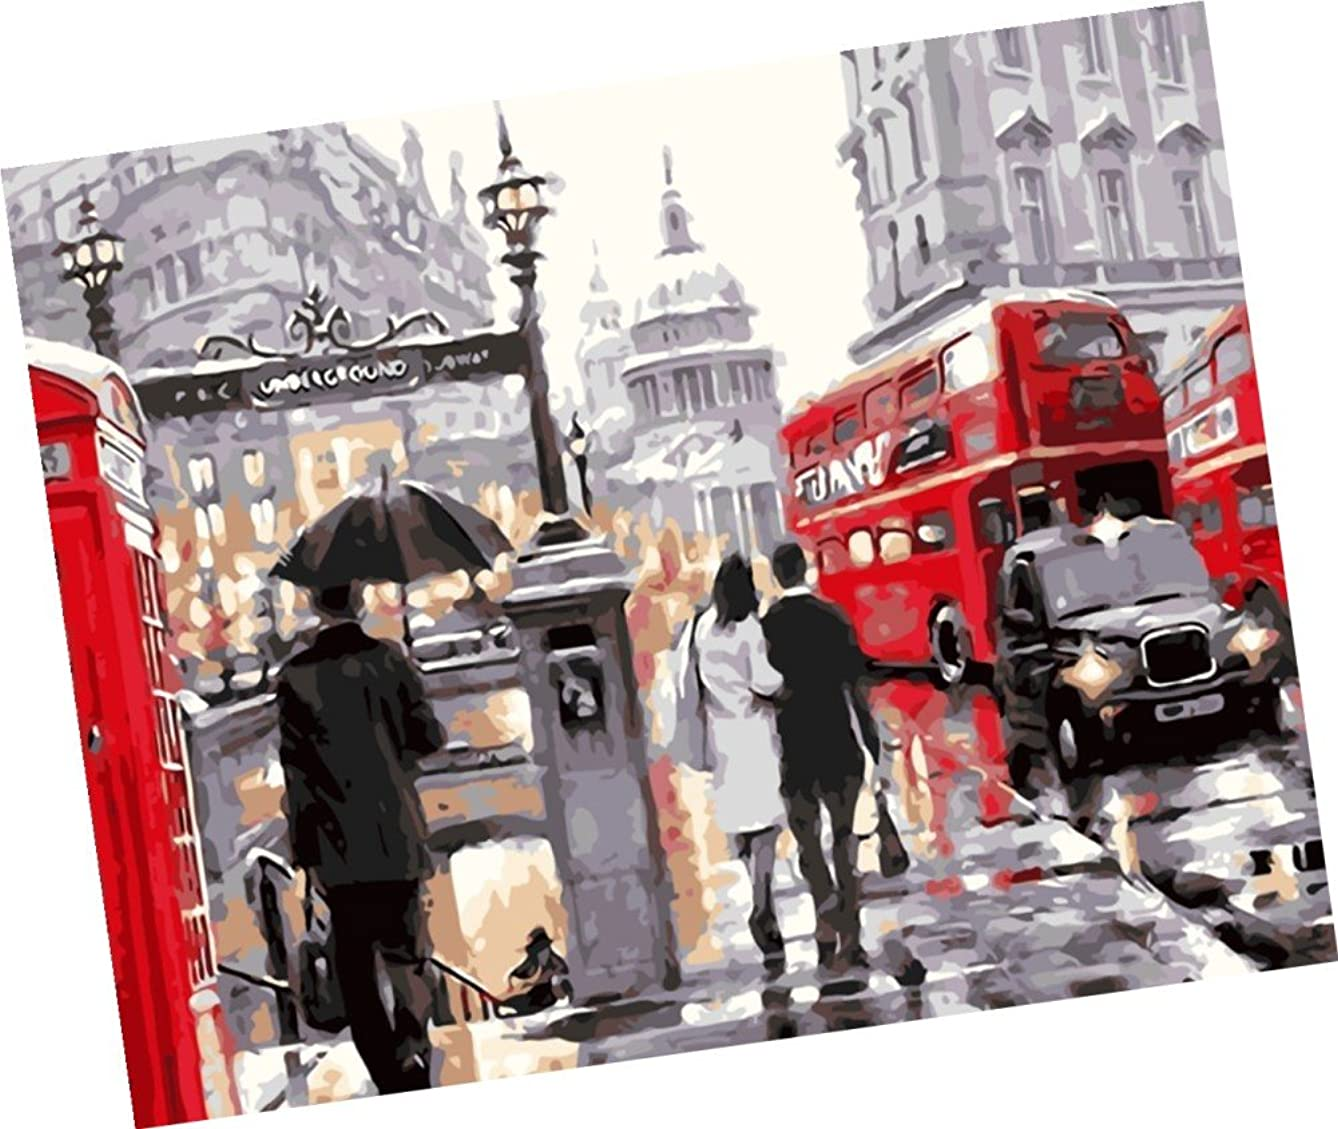 Wowdecor Paint by Numbers Kits for Adults Kids, Number Painting - London Bustling Streets 16x20 inch (Frameless)